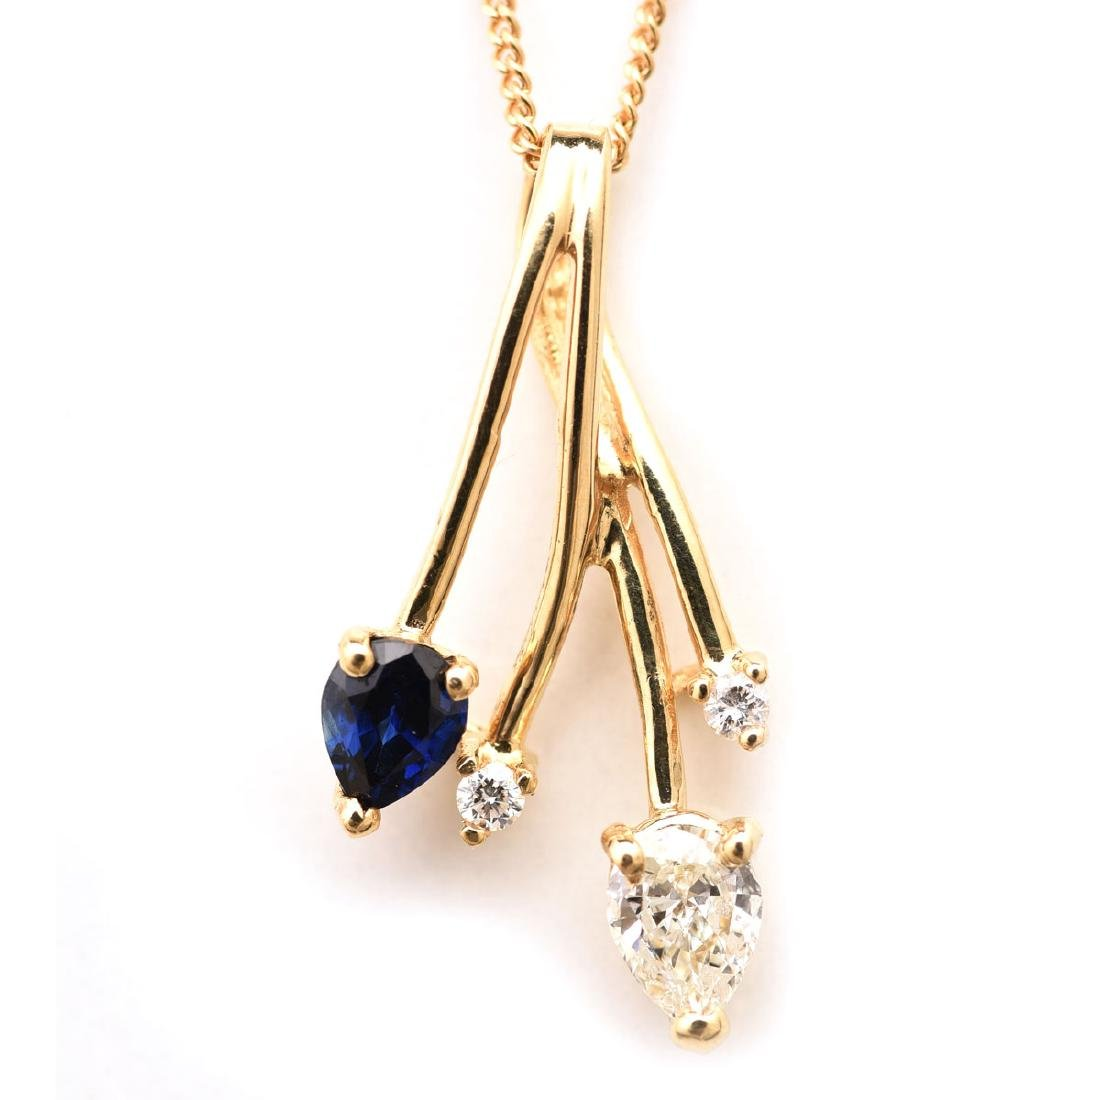 Diamond, Sapphire, 14k Yellow Gold Necklace.